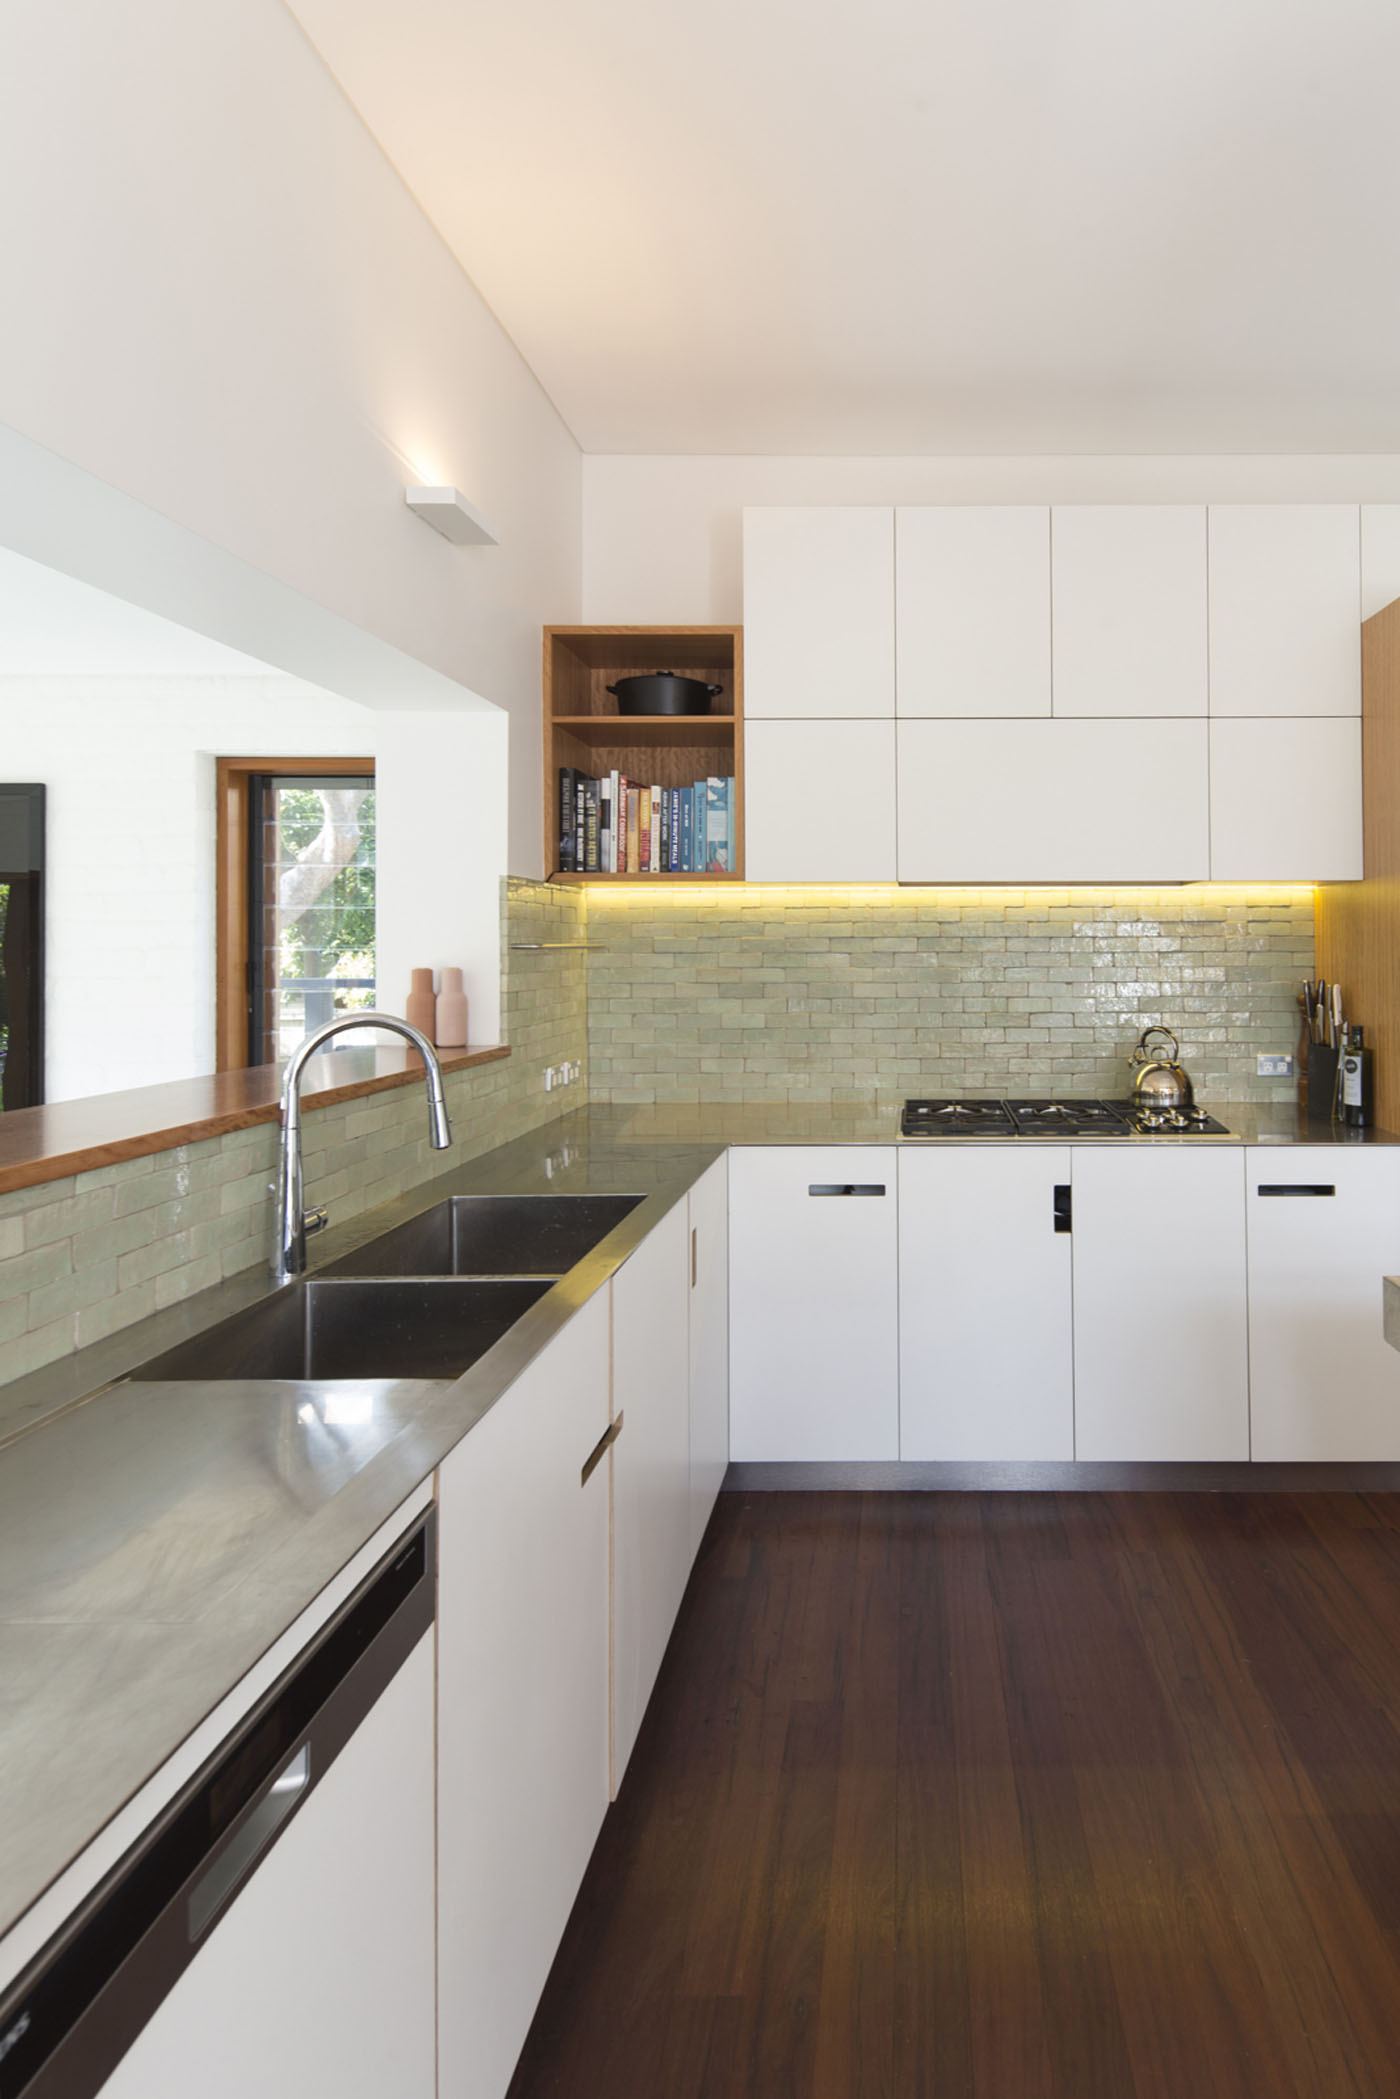 Denney House by Sam Crawford Architects, stainless steel benchtop kitchen with tiled splashback and custom cupboard handles